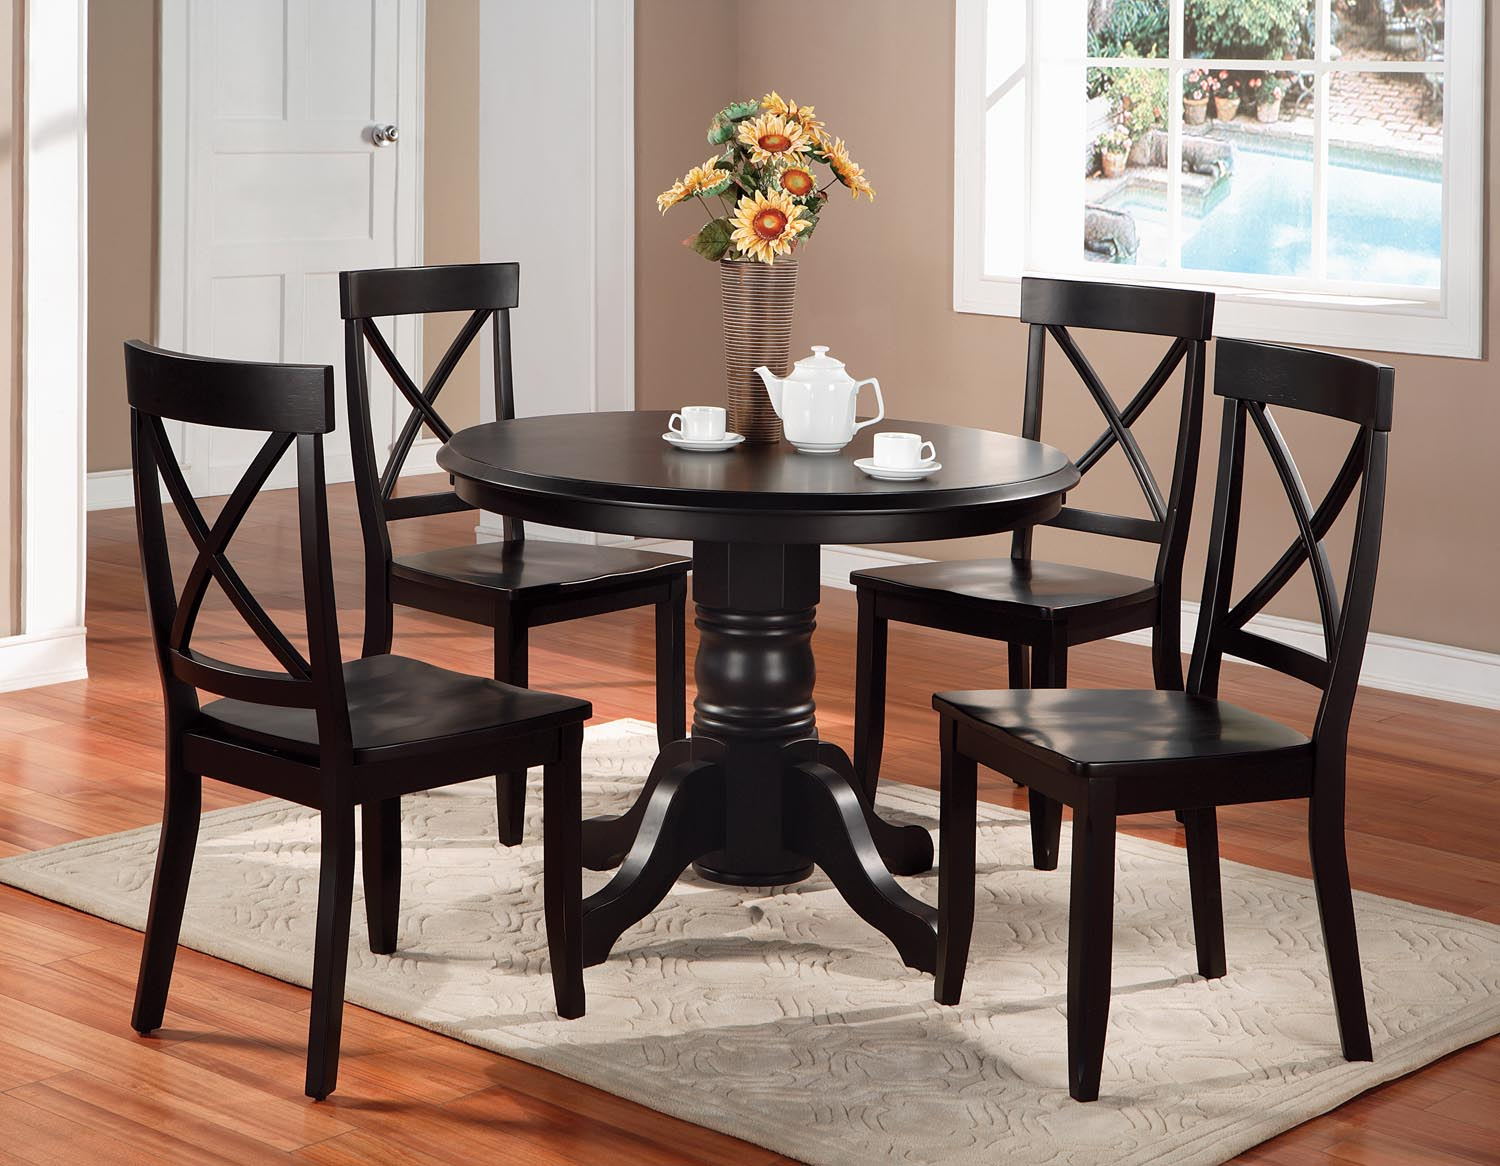 Blair 5-Piece Dining Set by homestyles at Suburban Furniture